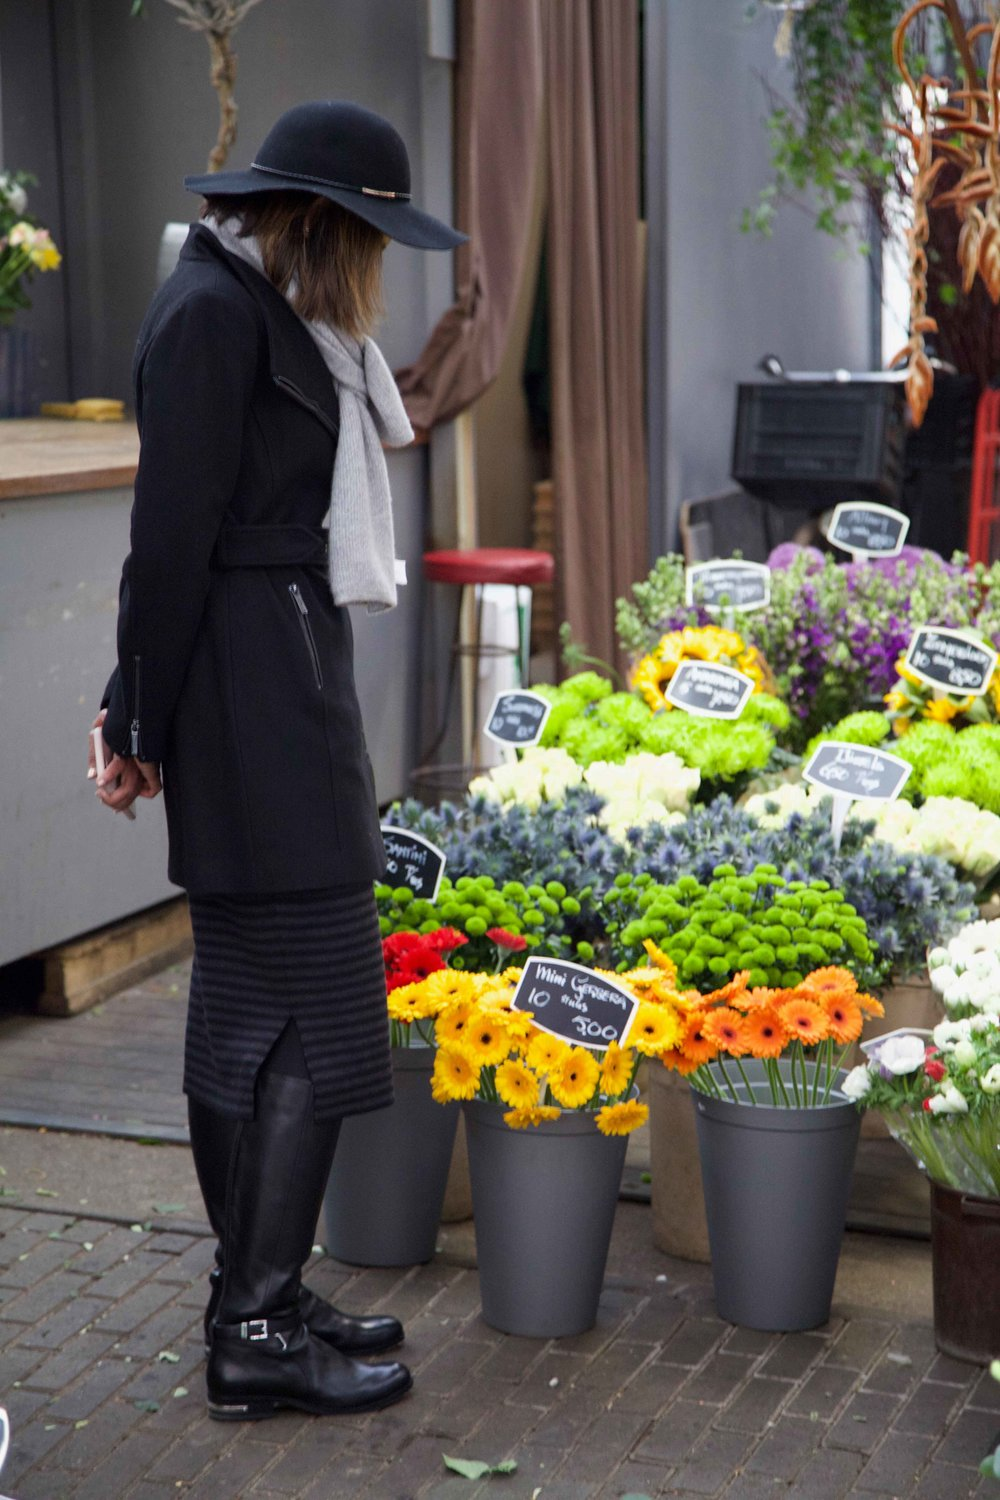 Flower Market, Amsterdam. Photo: Fabio Ricci. Image©thingstodot.com